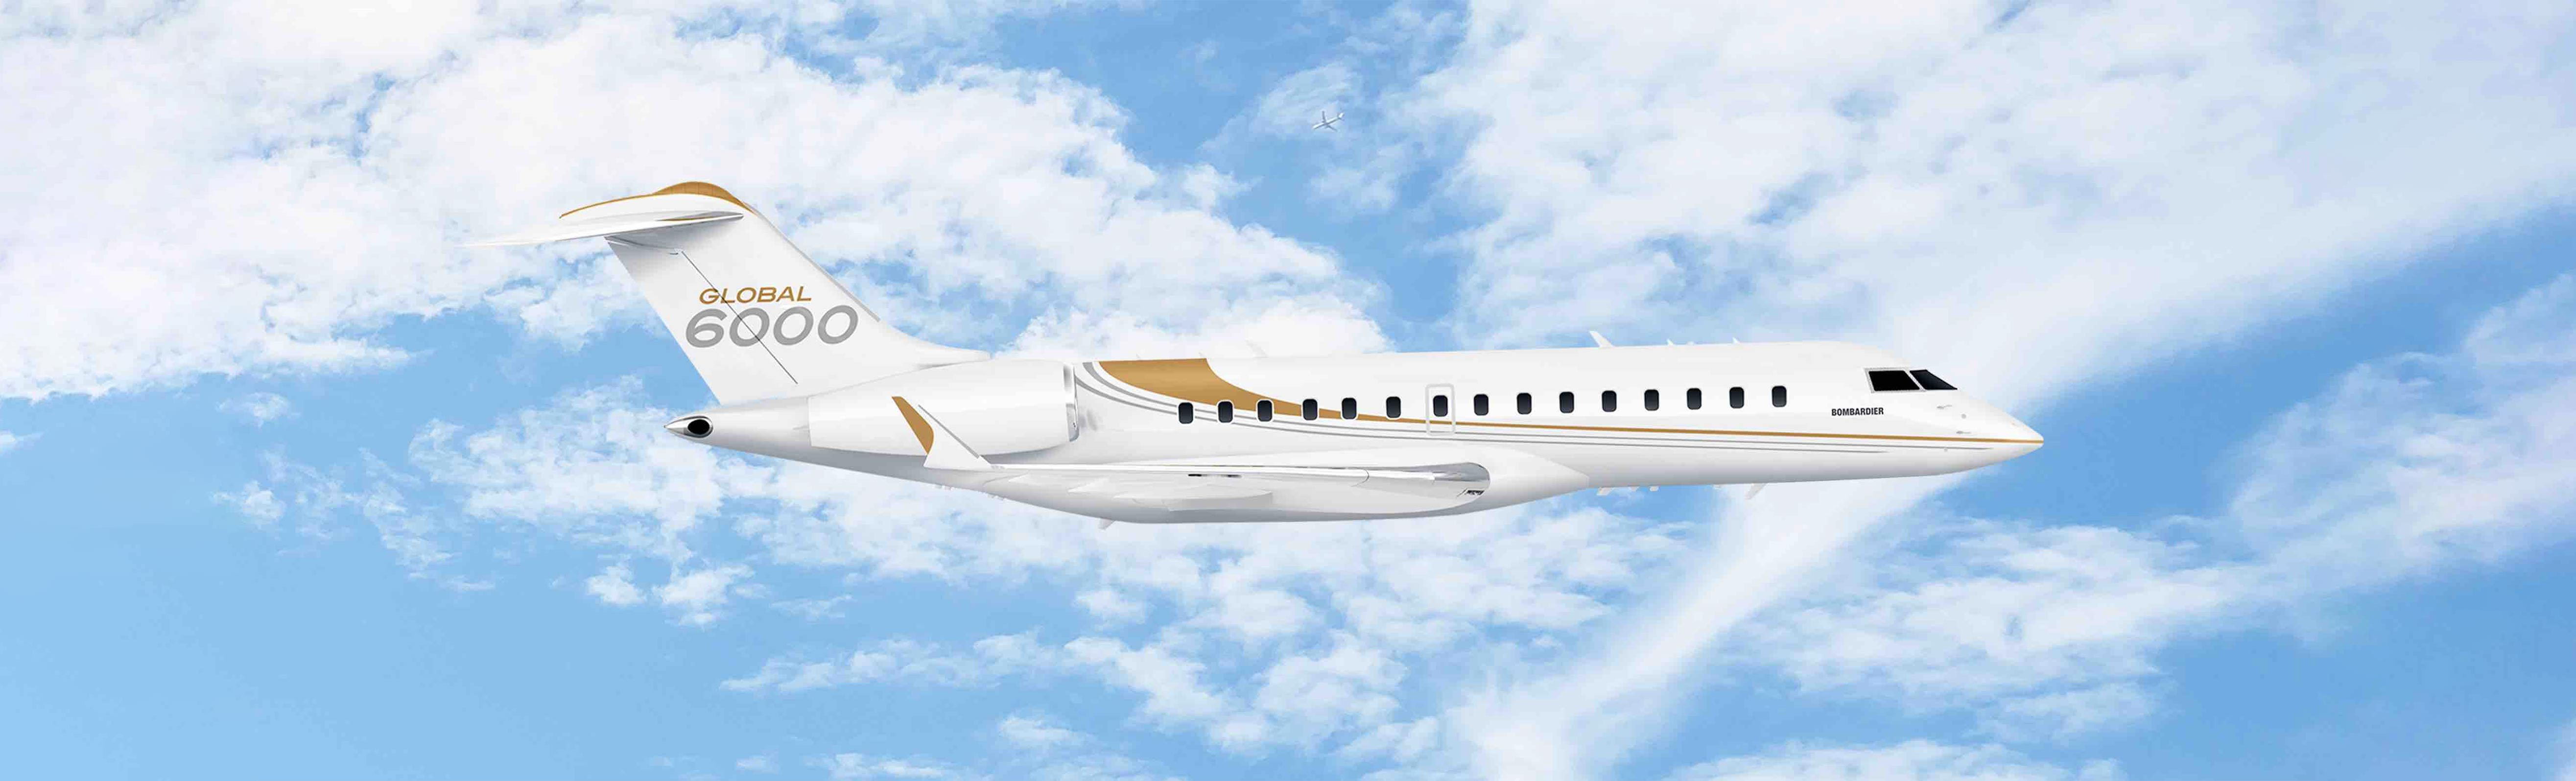 Bombardier Global 6000 aircraft joins TAG Aviation Malta's managed fleet